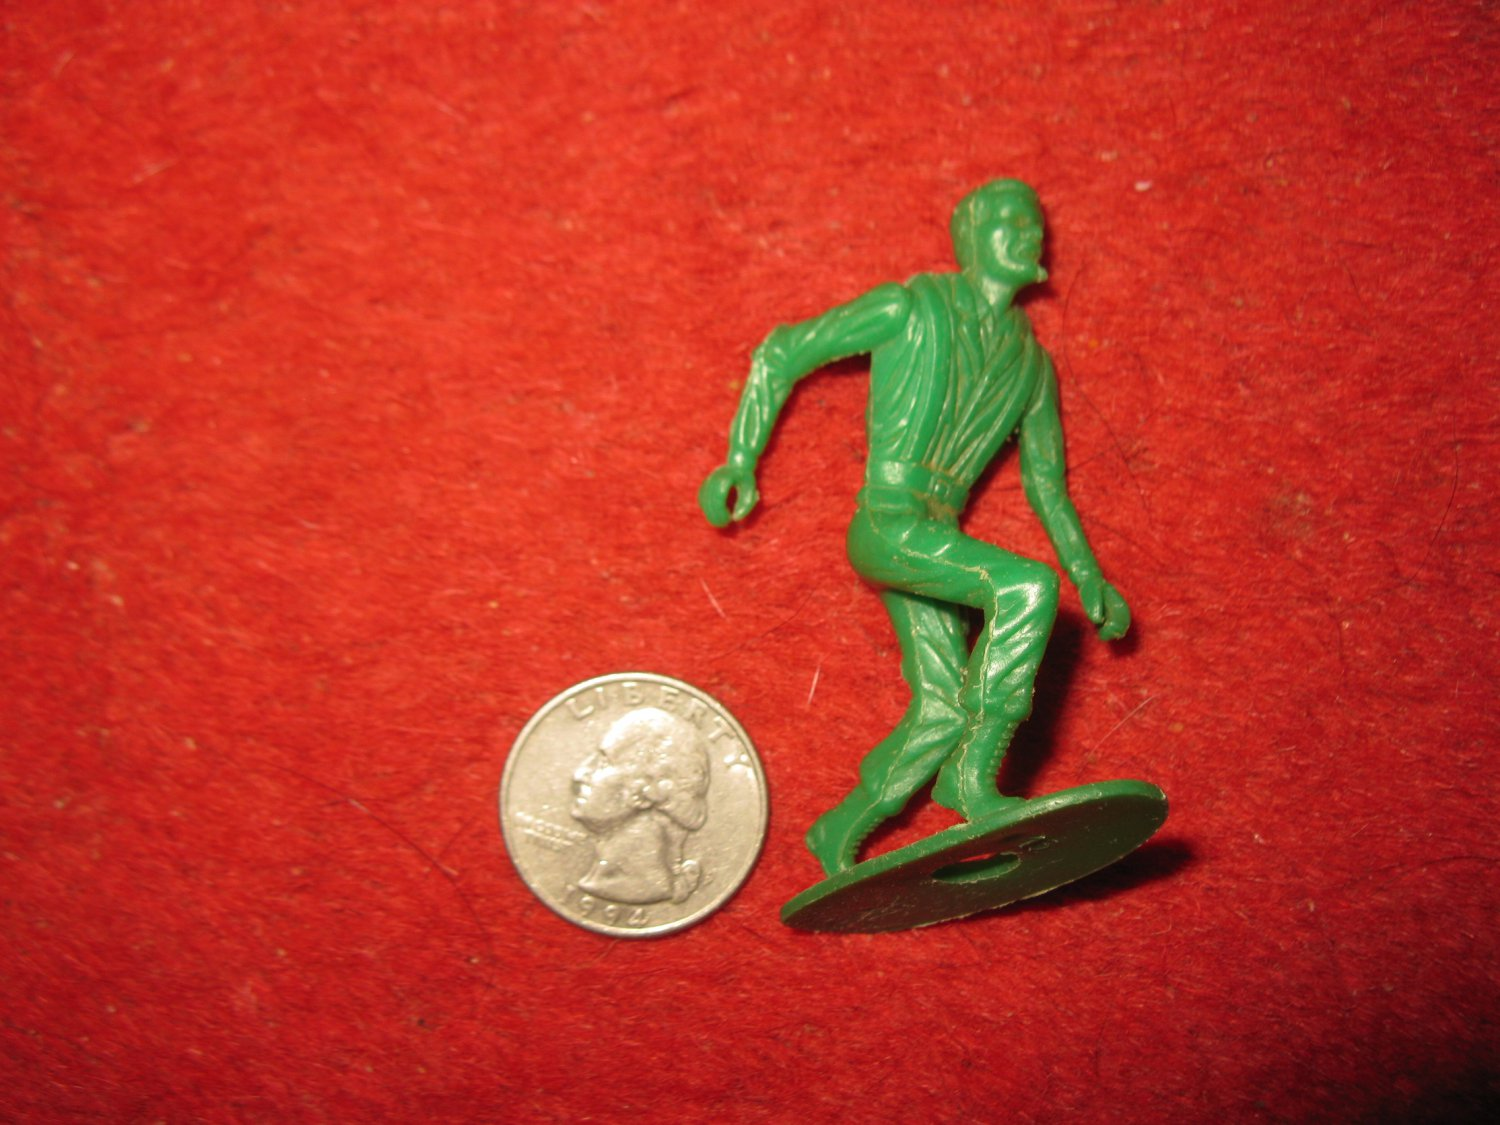 Vintage Miniature Playset figure: RARE MPC #16 Green Plastic Toy Soldier w/ Removedable gun